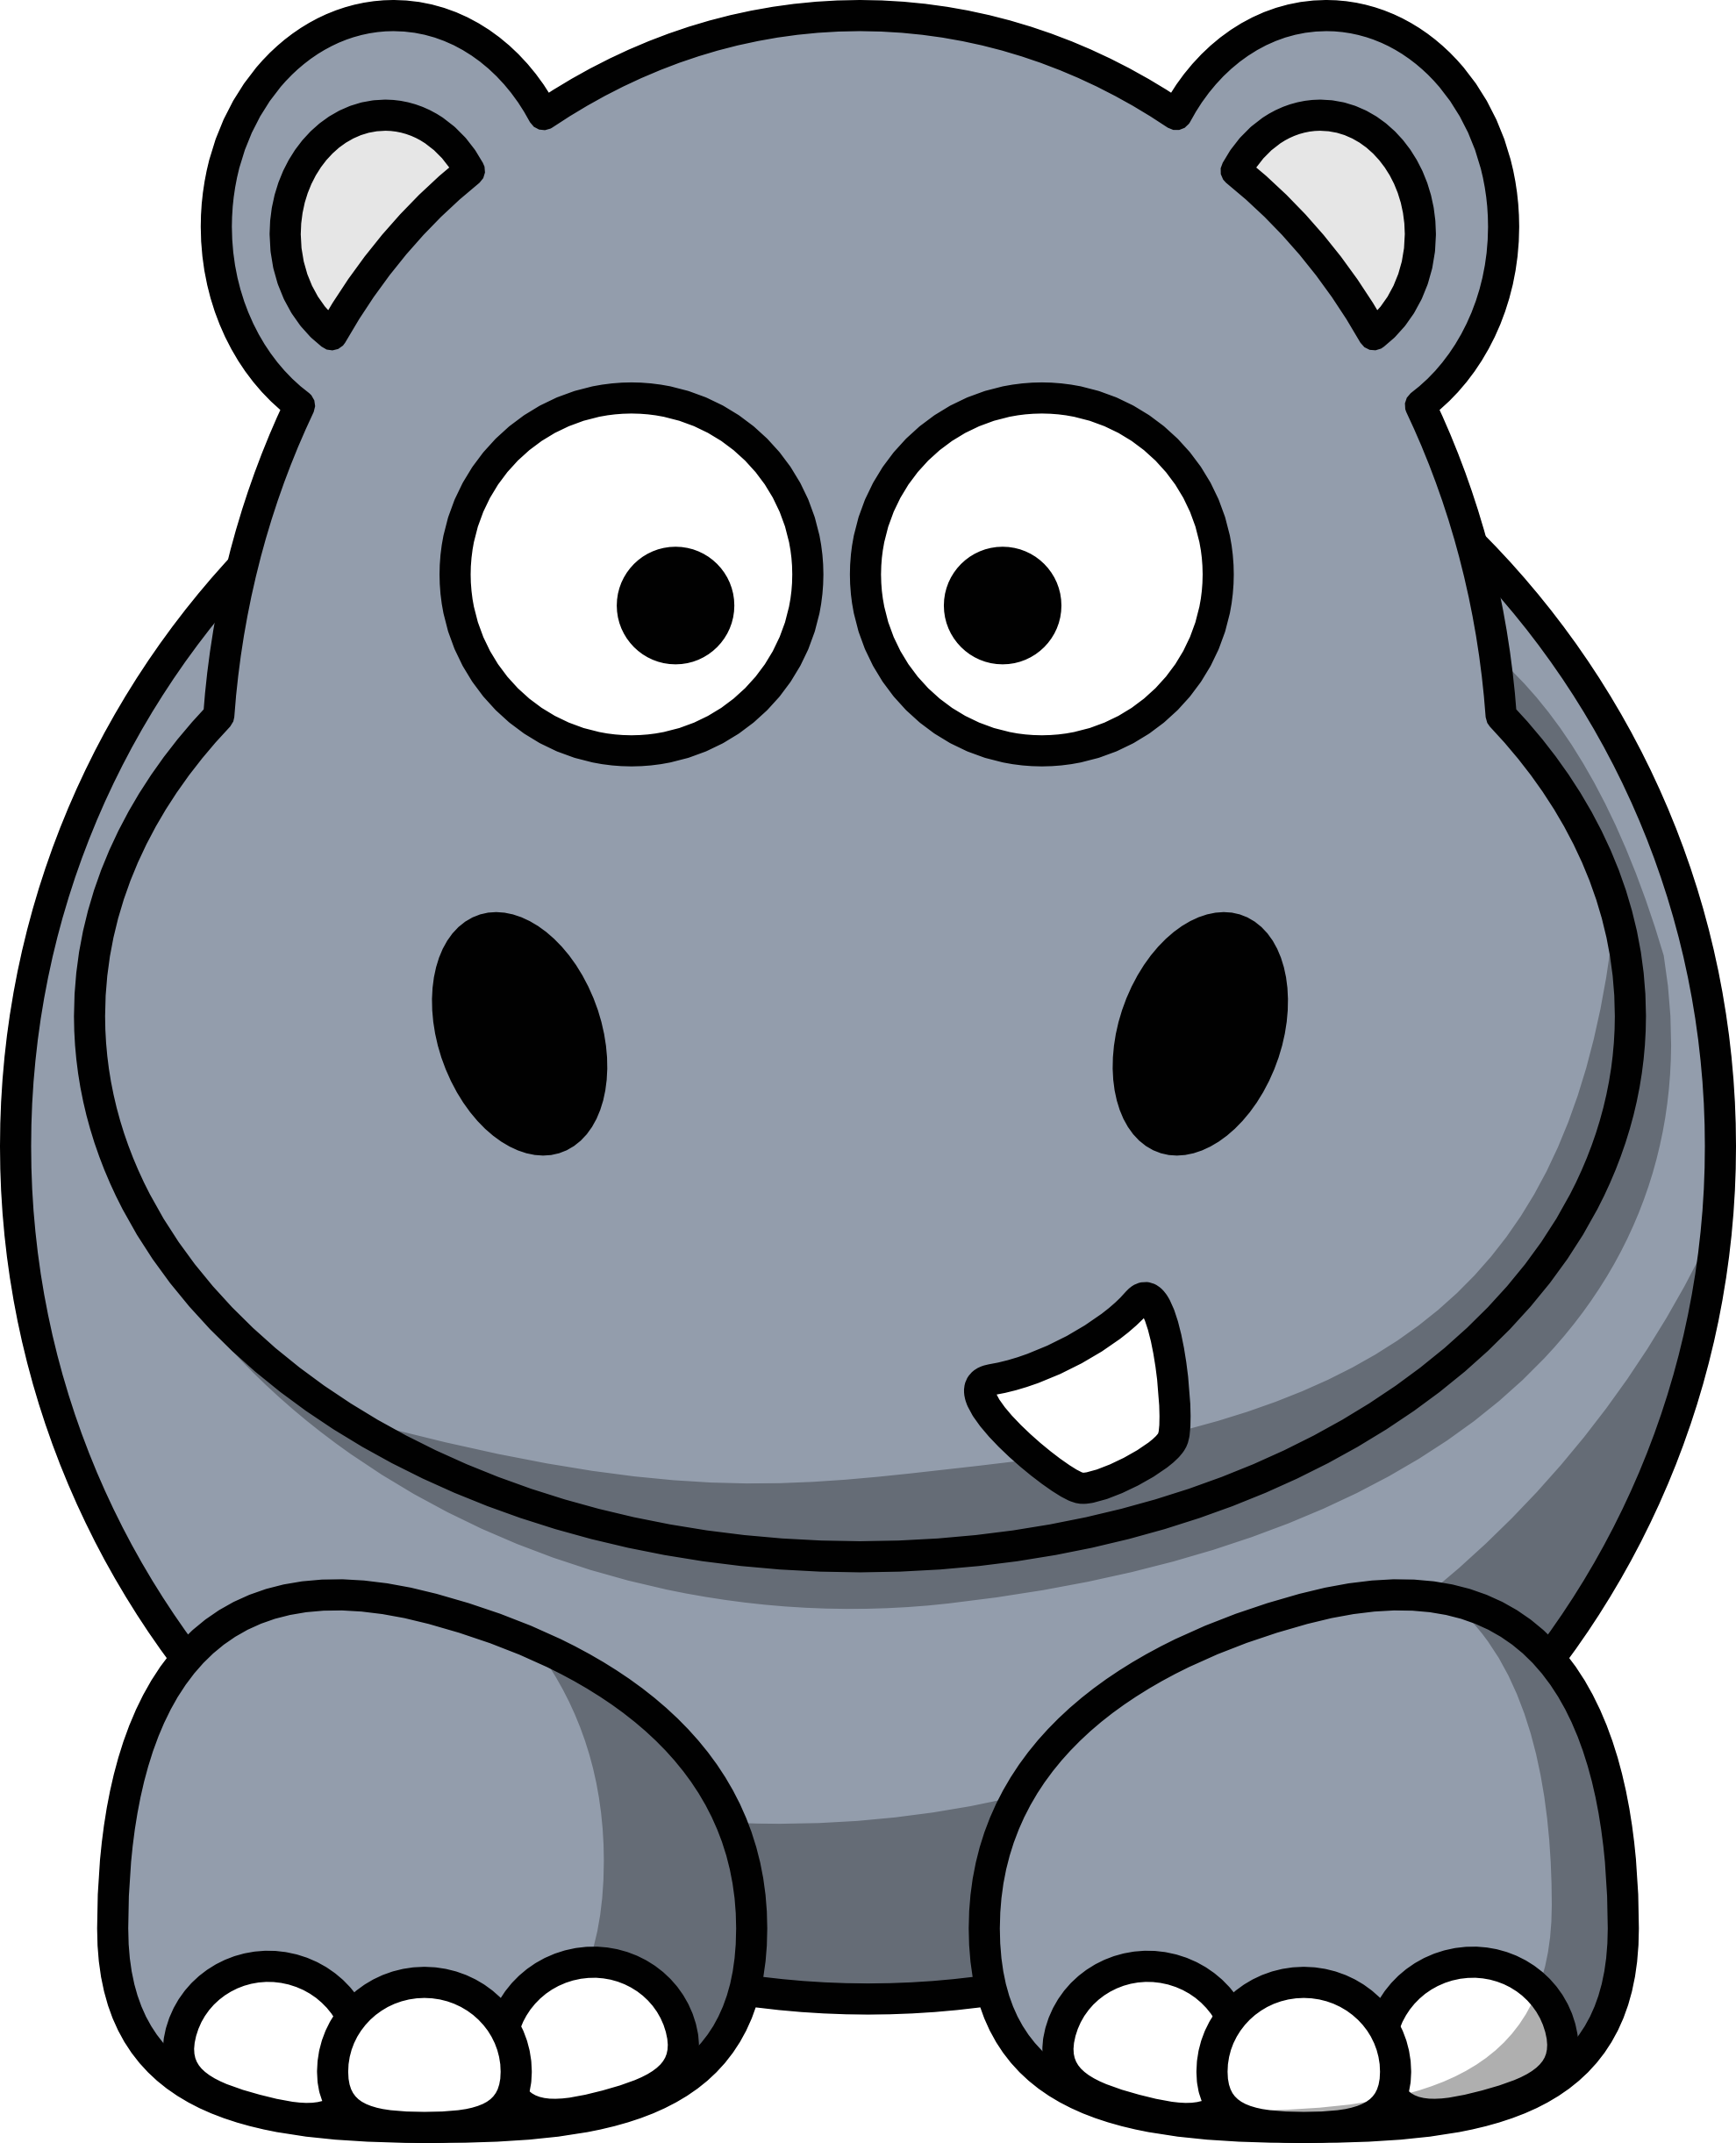 Ox clipart black and white. Hippo free download best